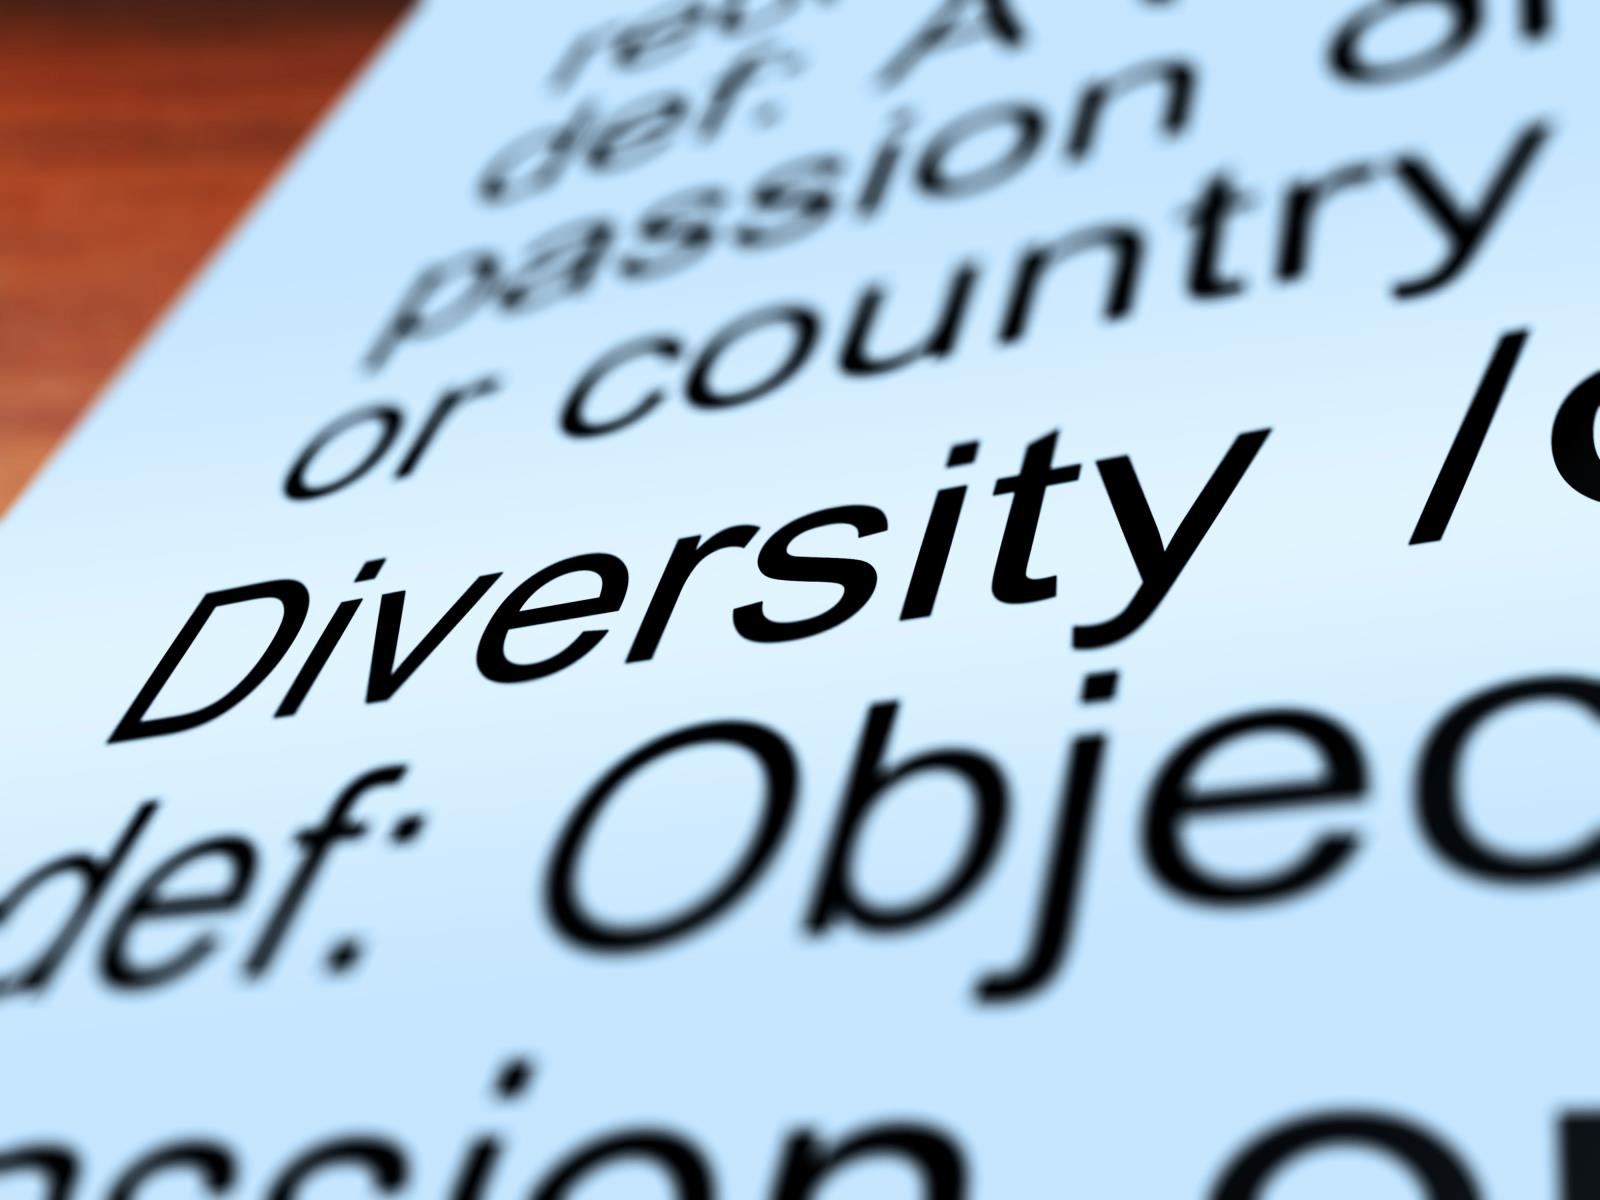 diversity-definition-closeup-showing-different-or-diverse_z1xN9Mwu